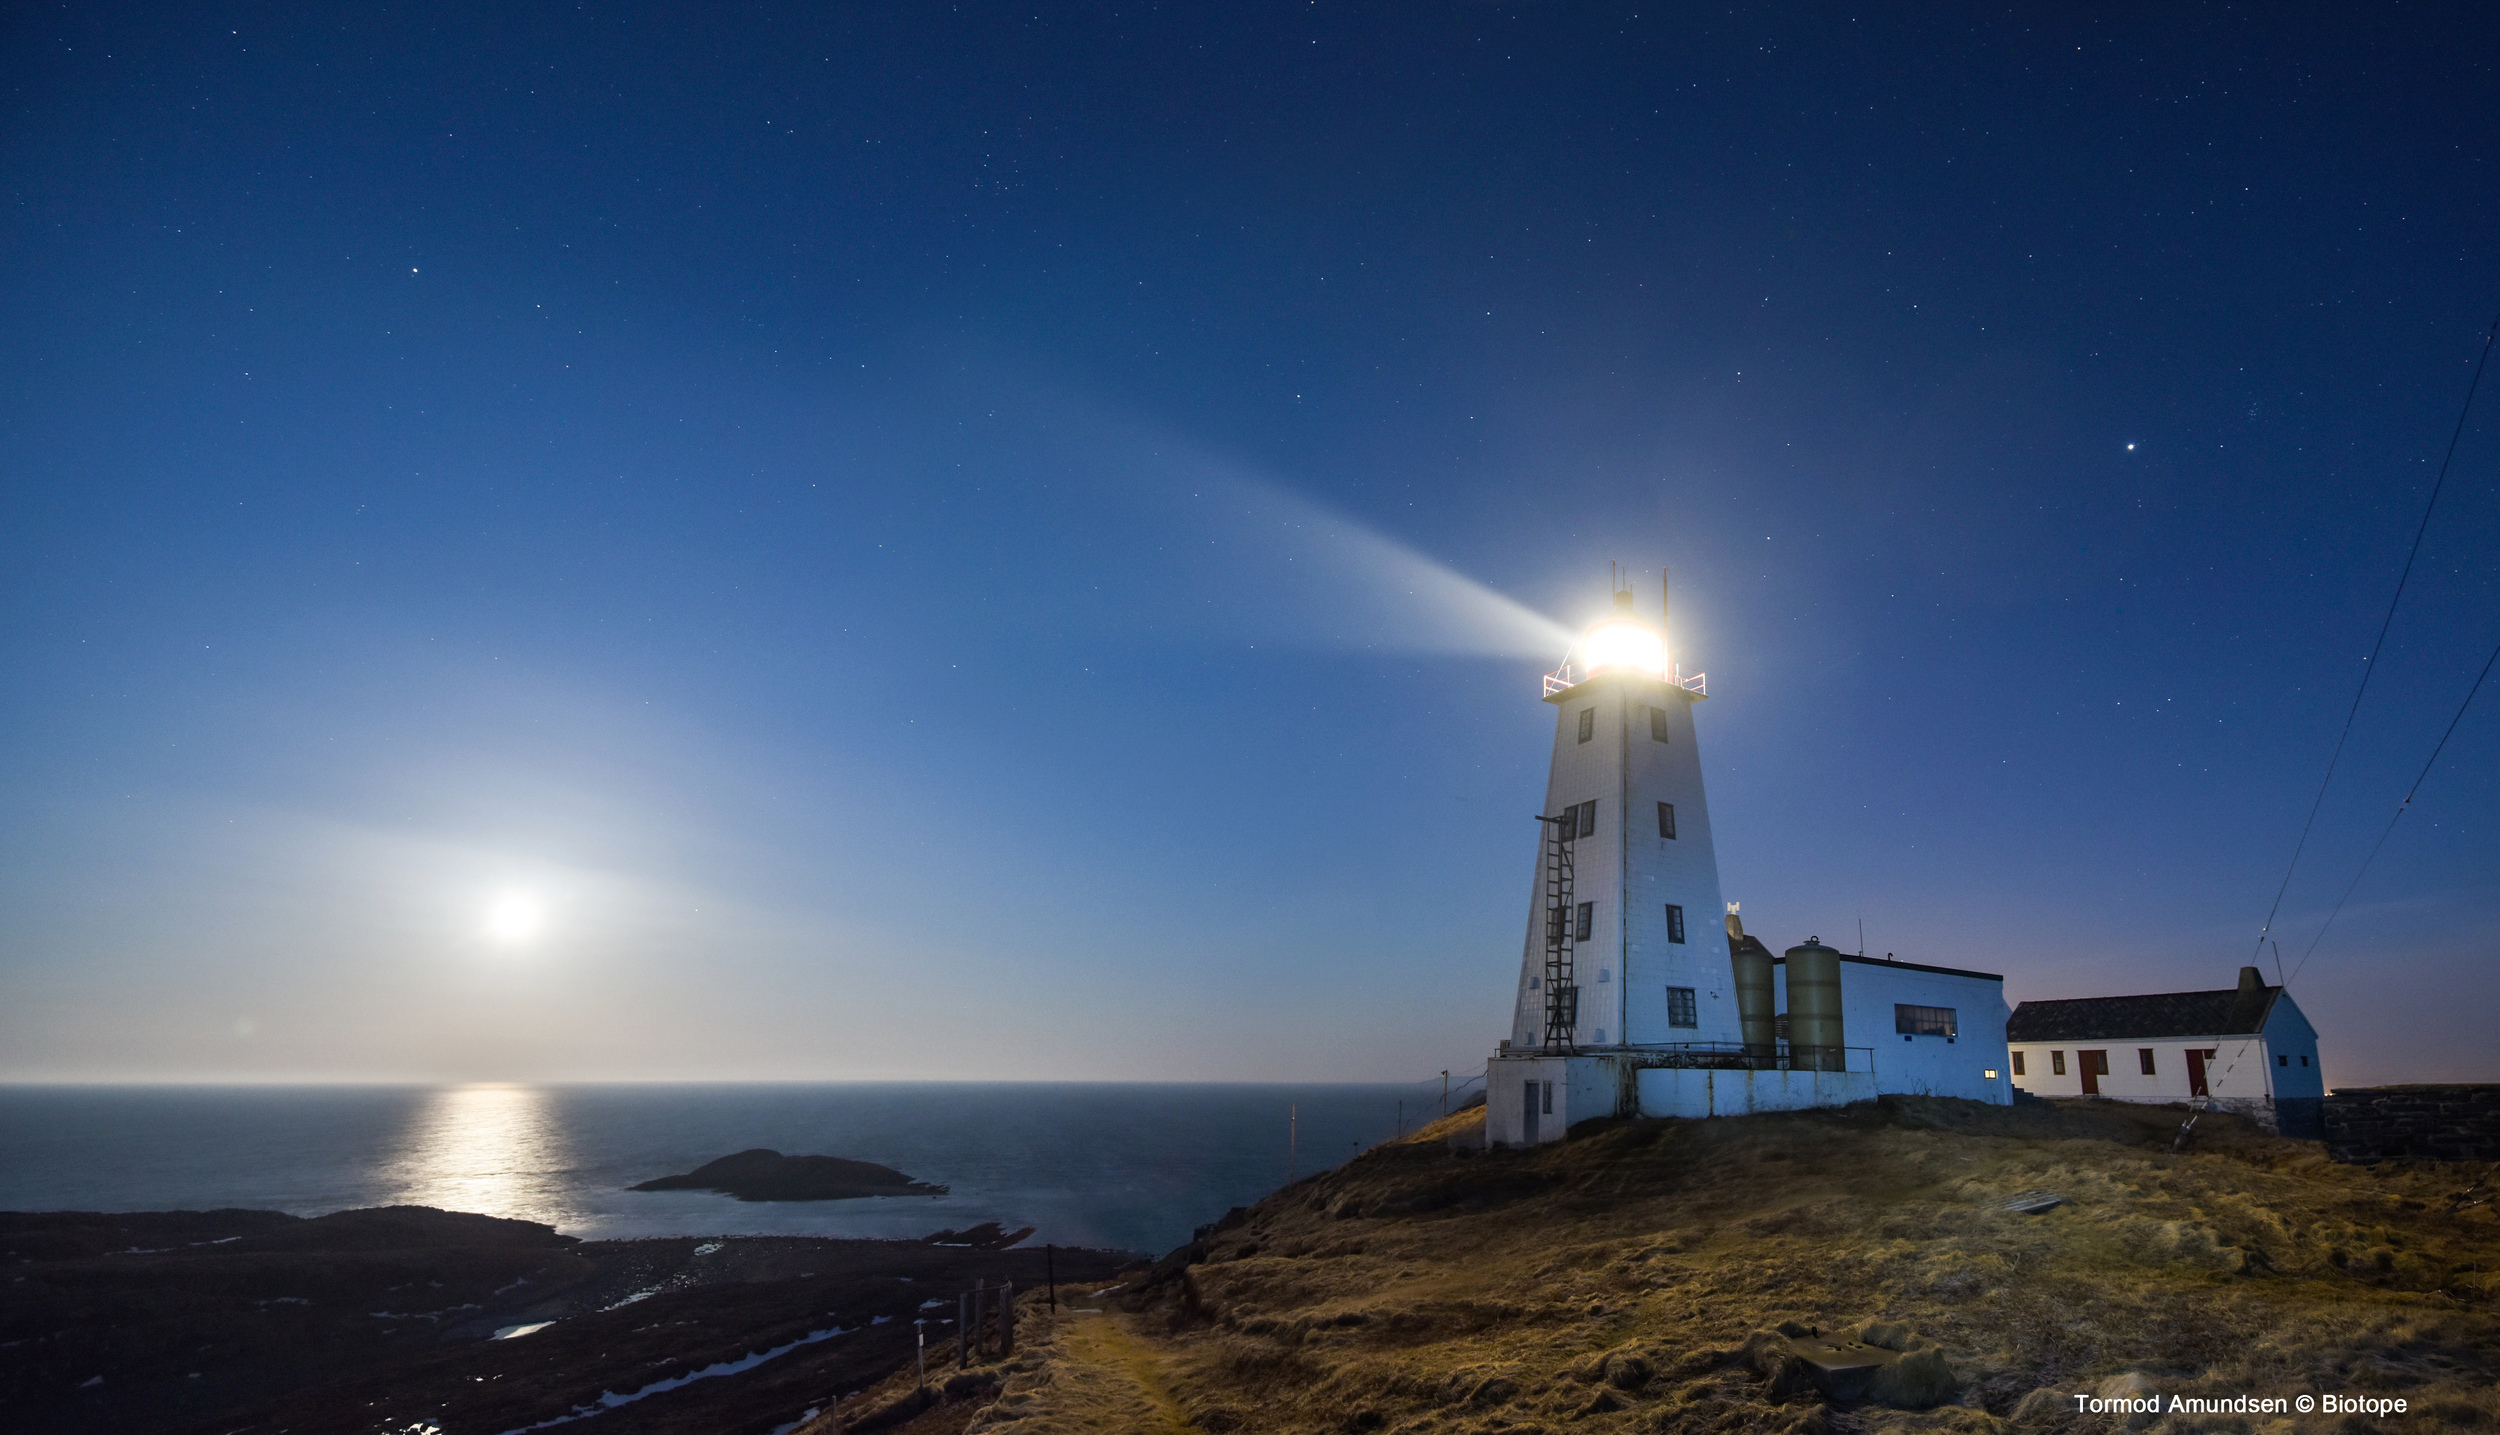 Hornøya lighthouse in full moon April 2015 med res Amundsen © Biotope.jpg